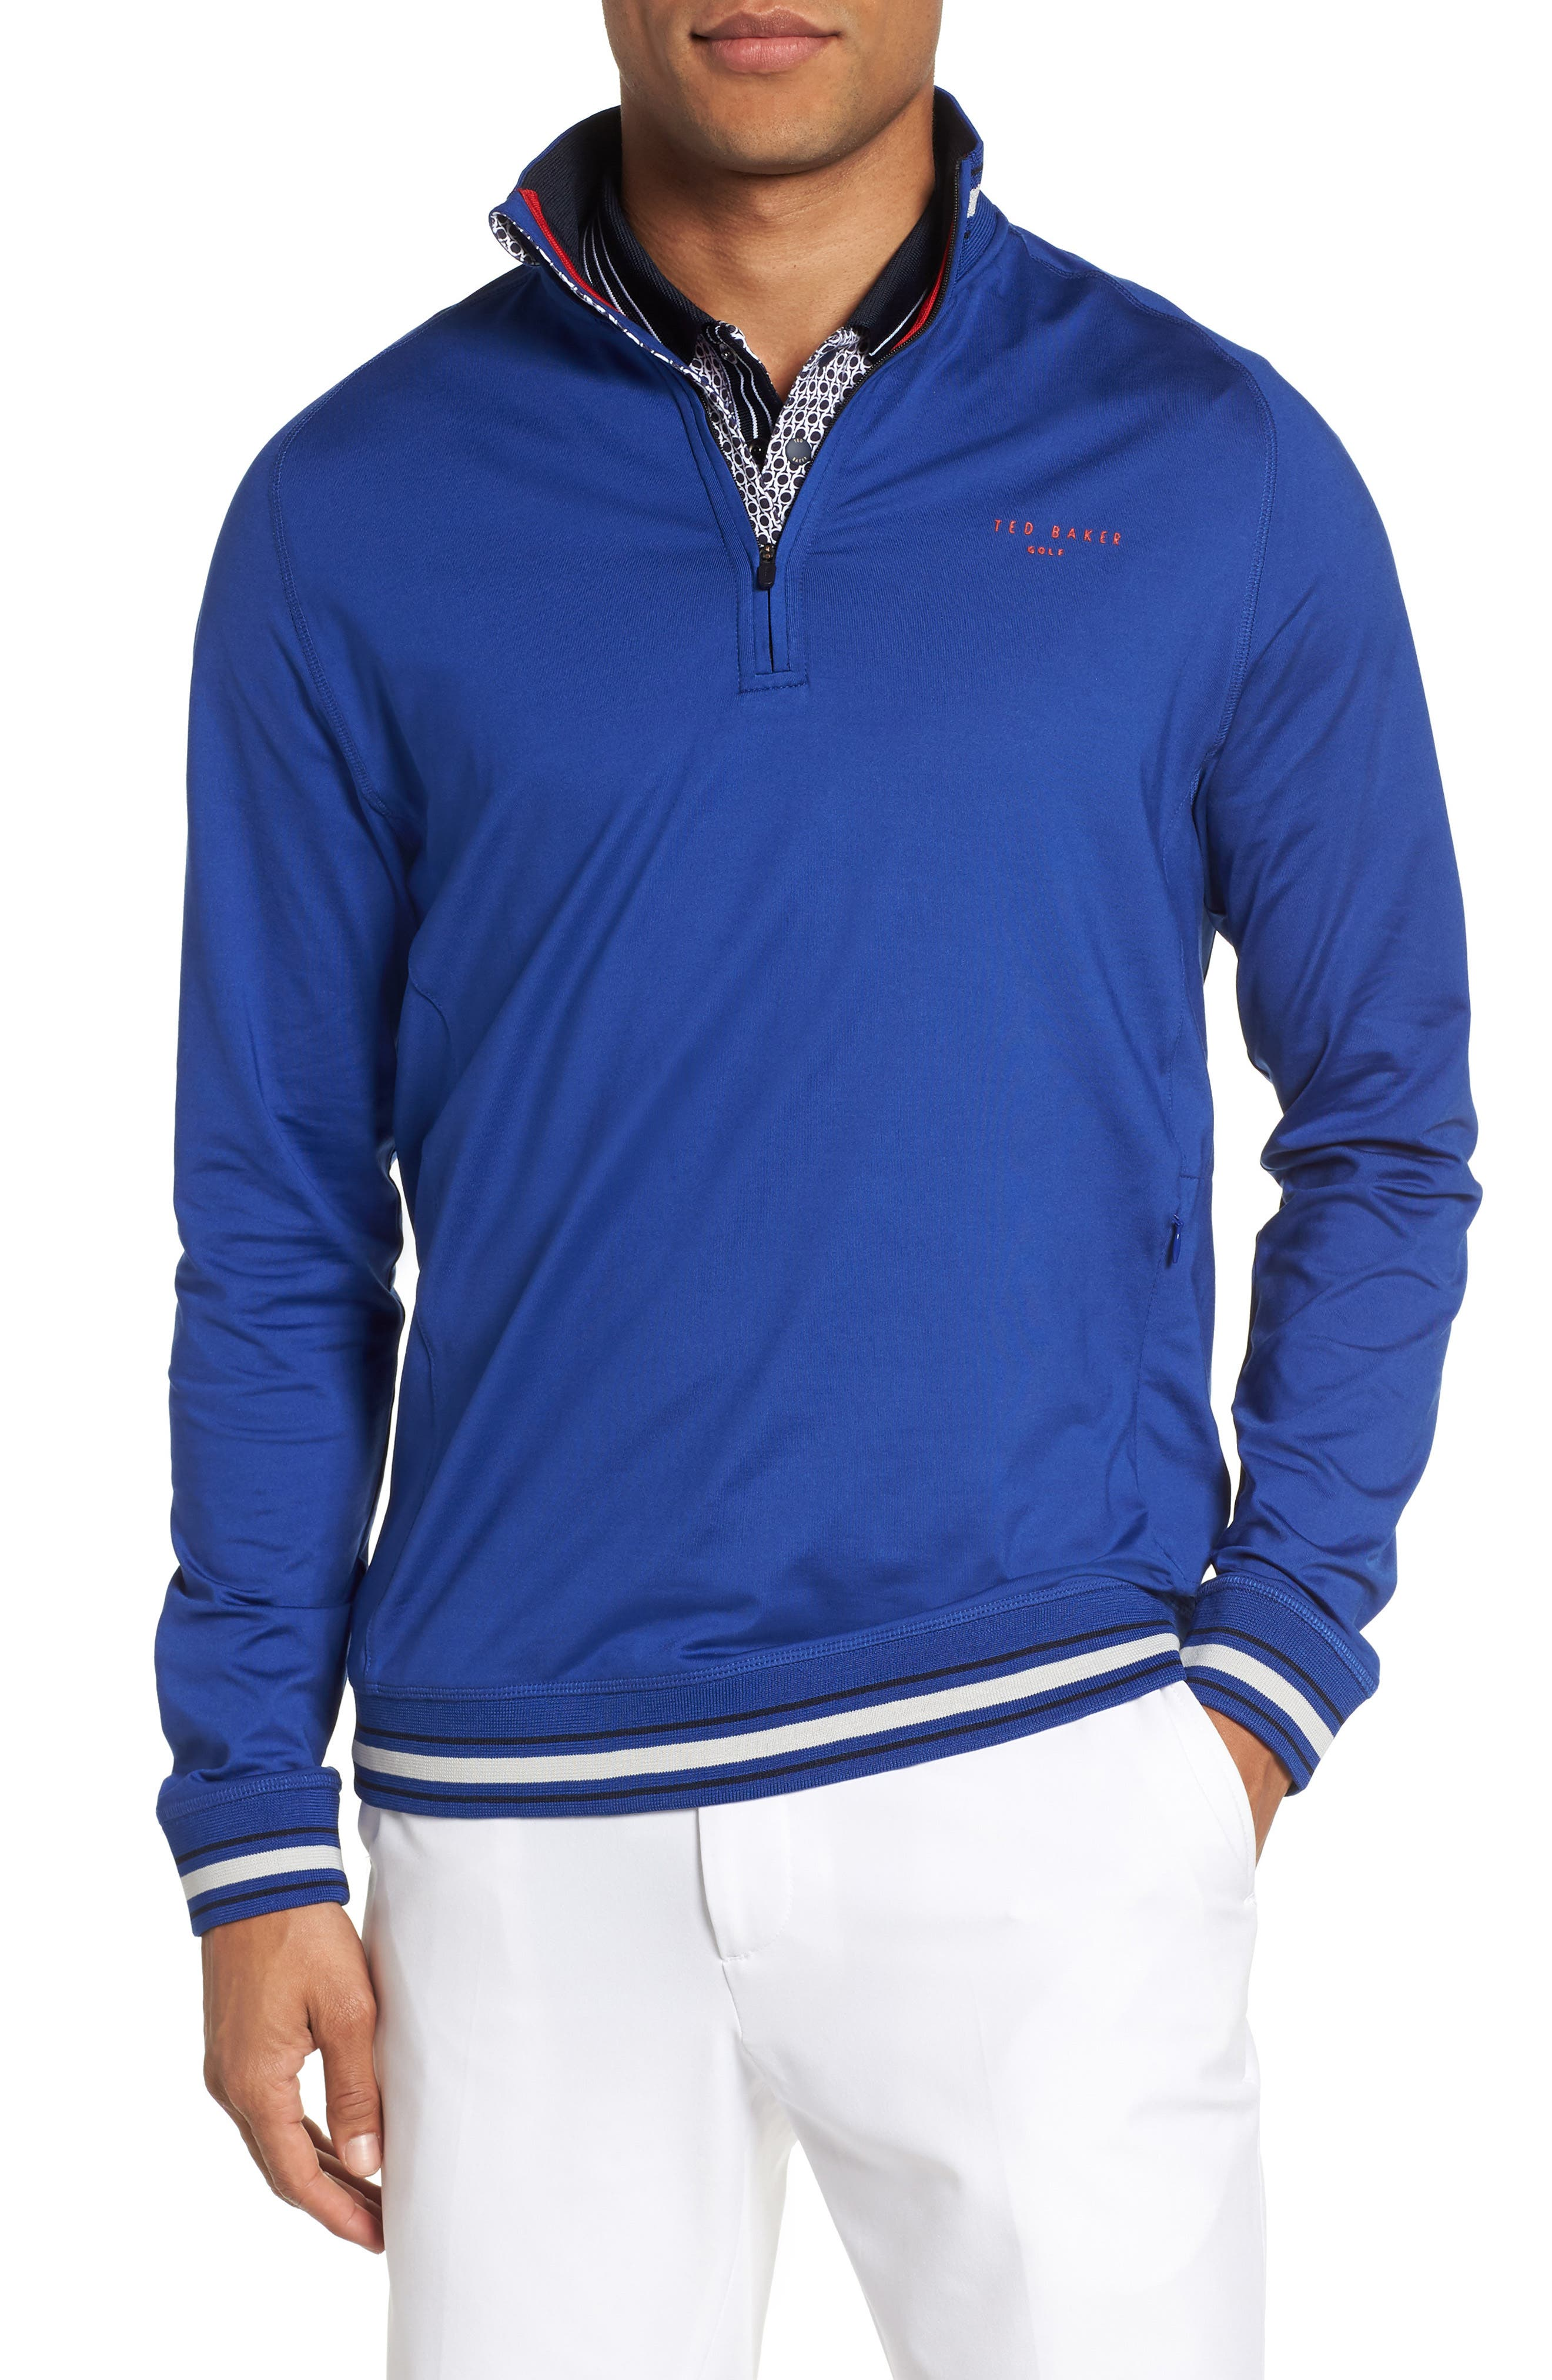 Trim Fit Quarter Zip Golf Pullover,                             Main thumbnail 1, color,                             Bright Blue